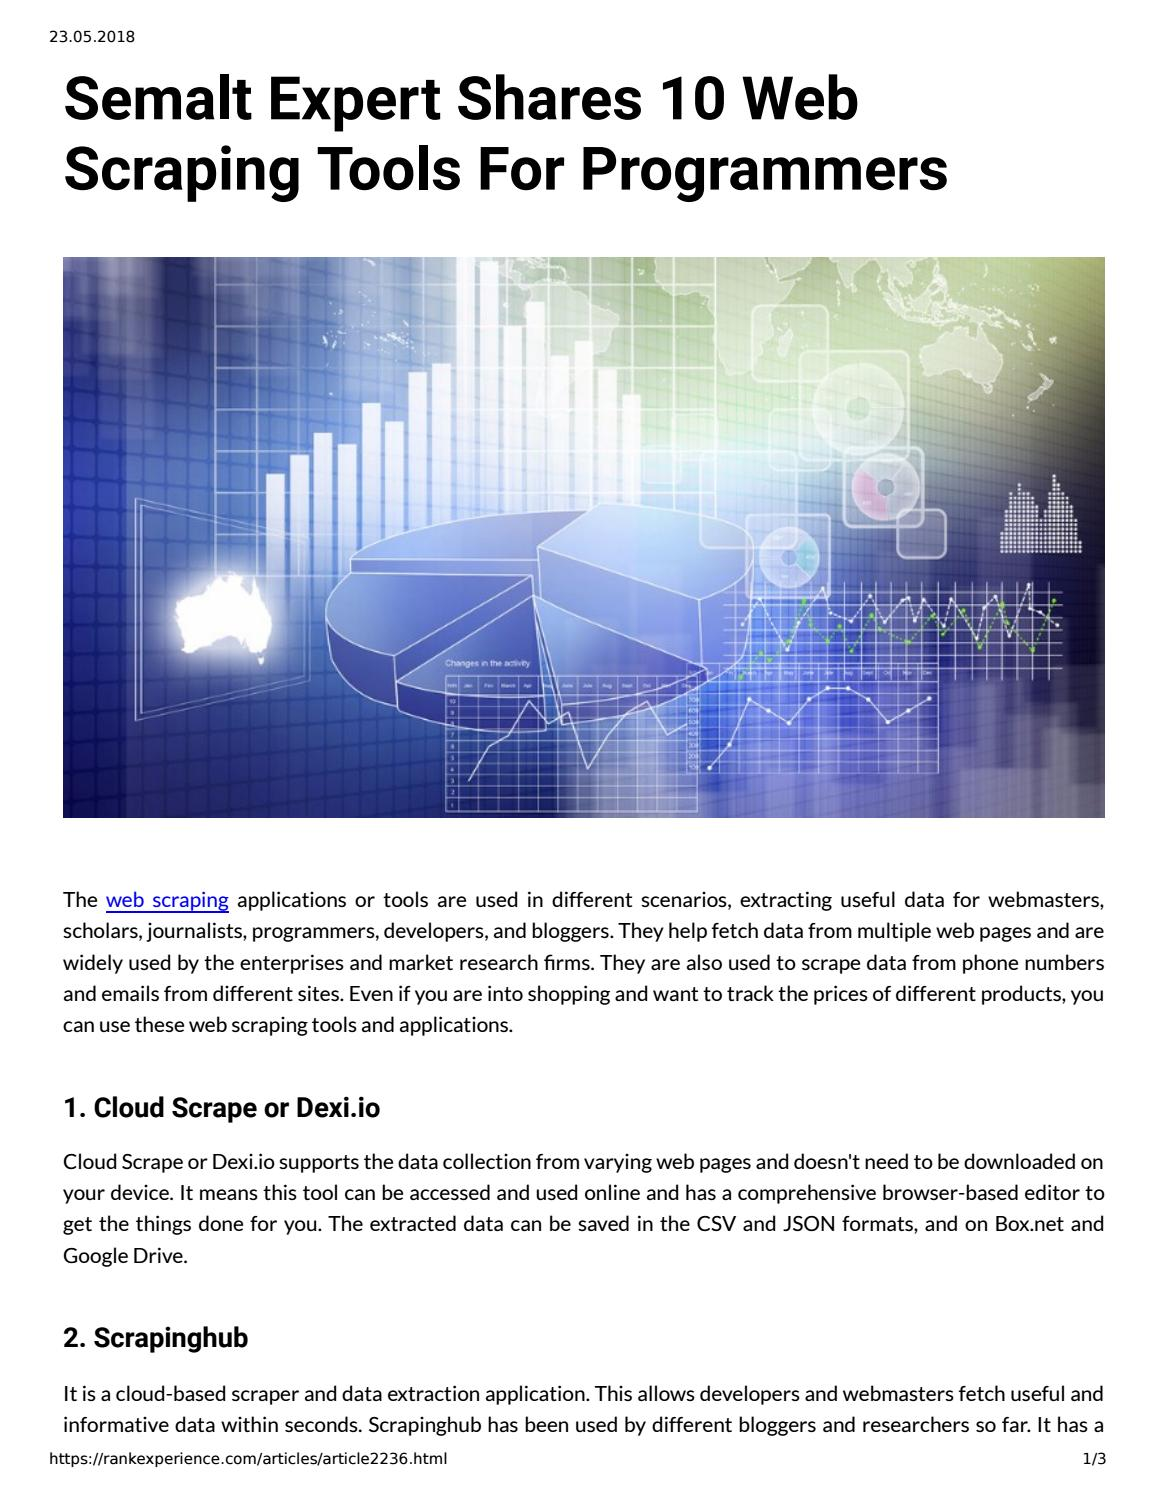 Semalt Expert Shares 10 Web Scraping Tools For Programmers